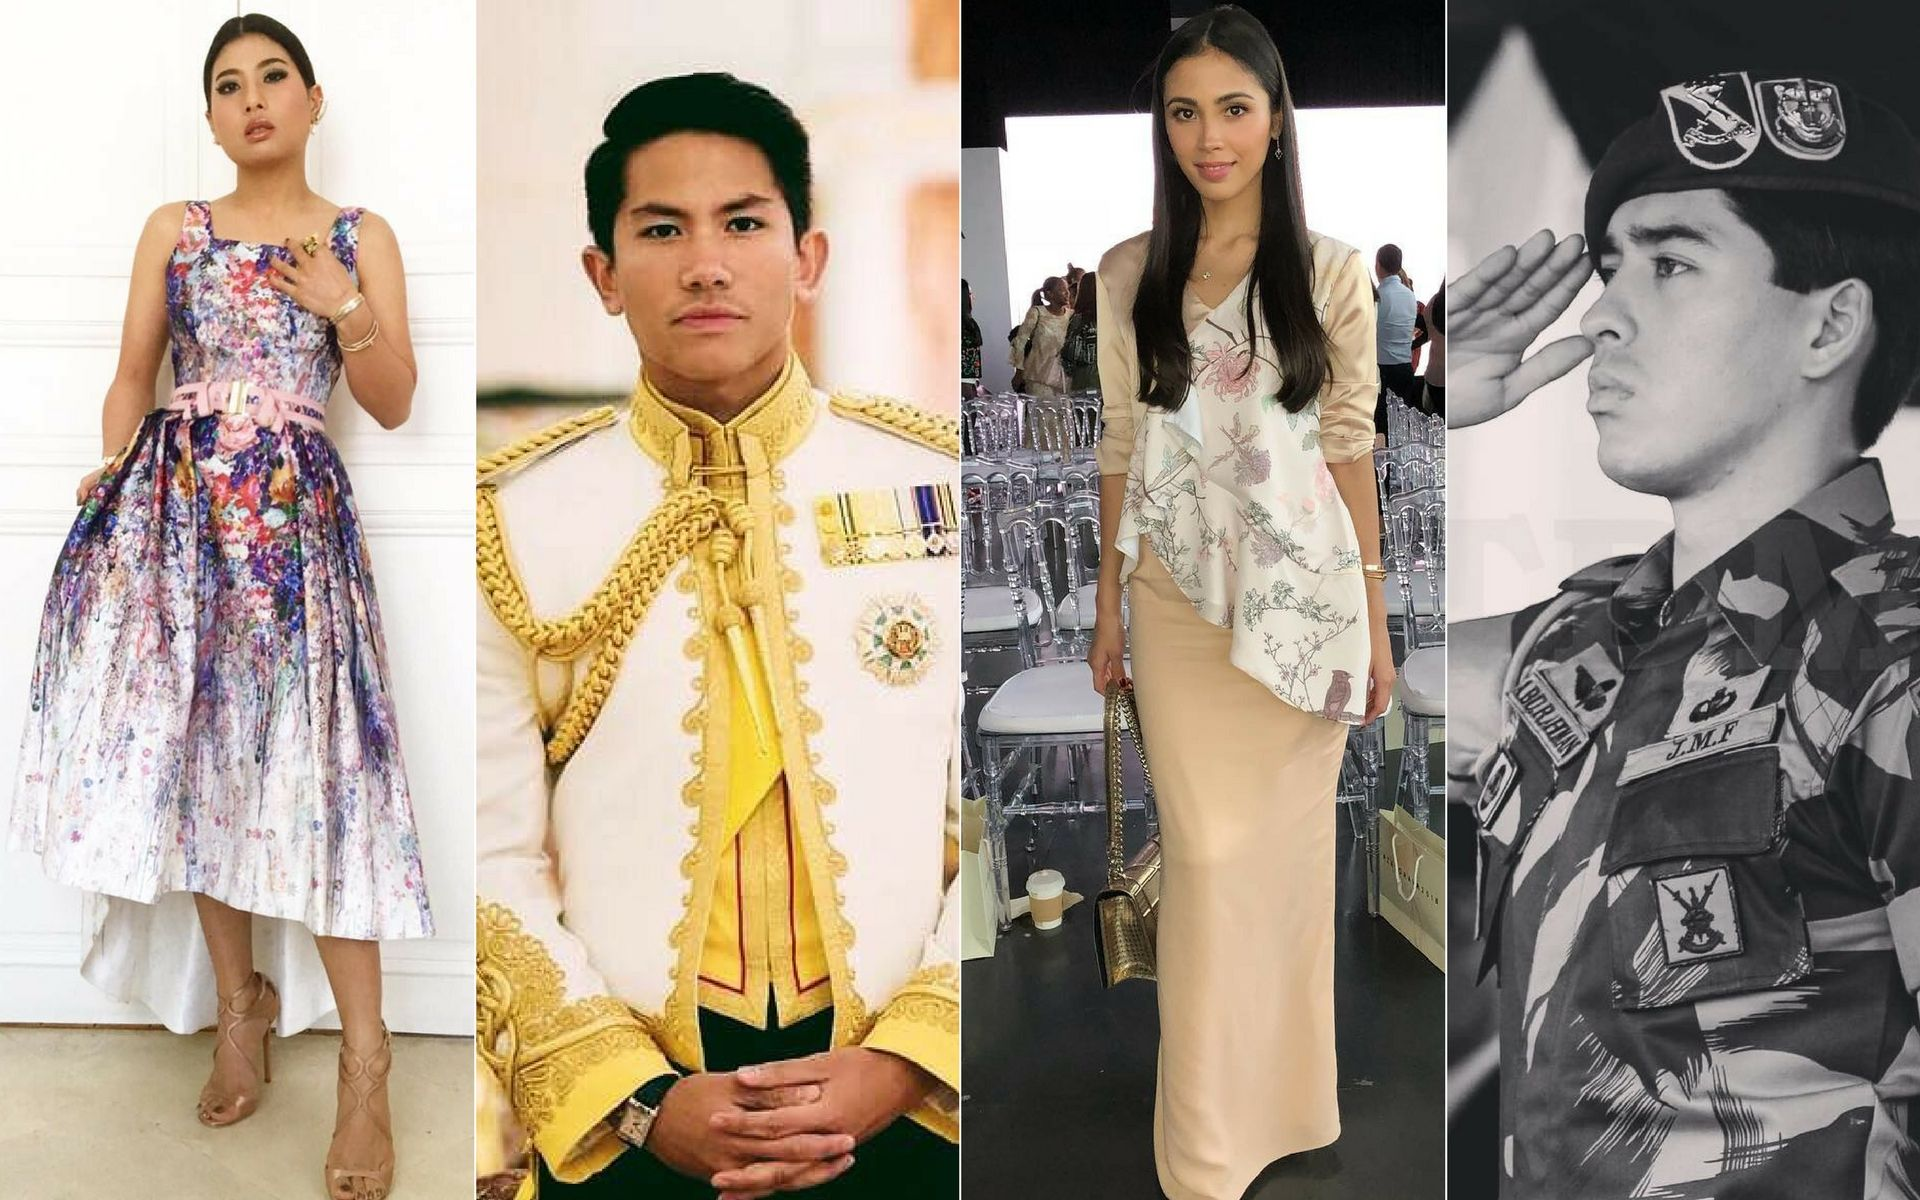 The 5 Hottest Young Royals Of Asia To Follow On Instagram